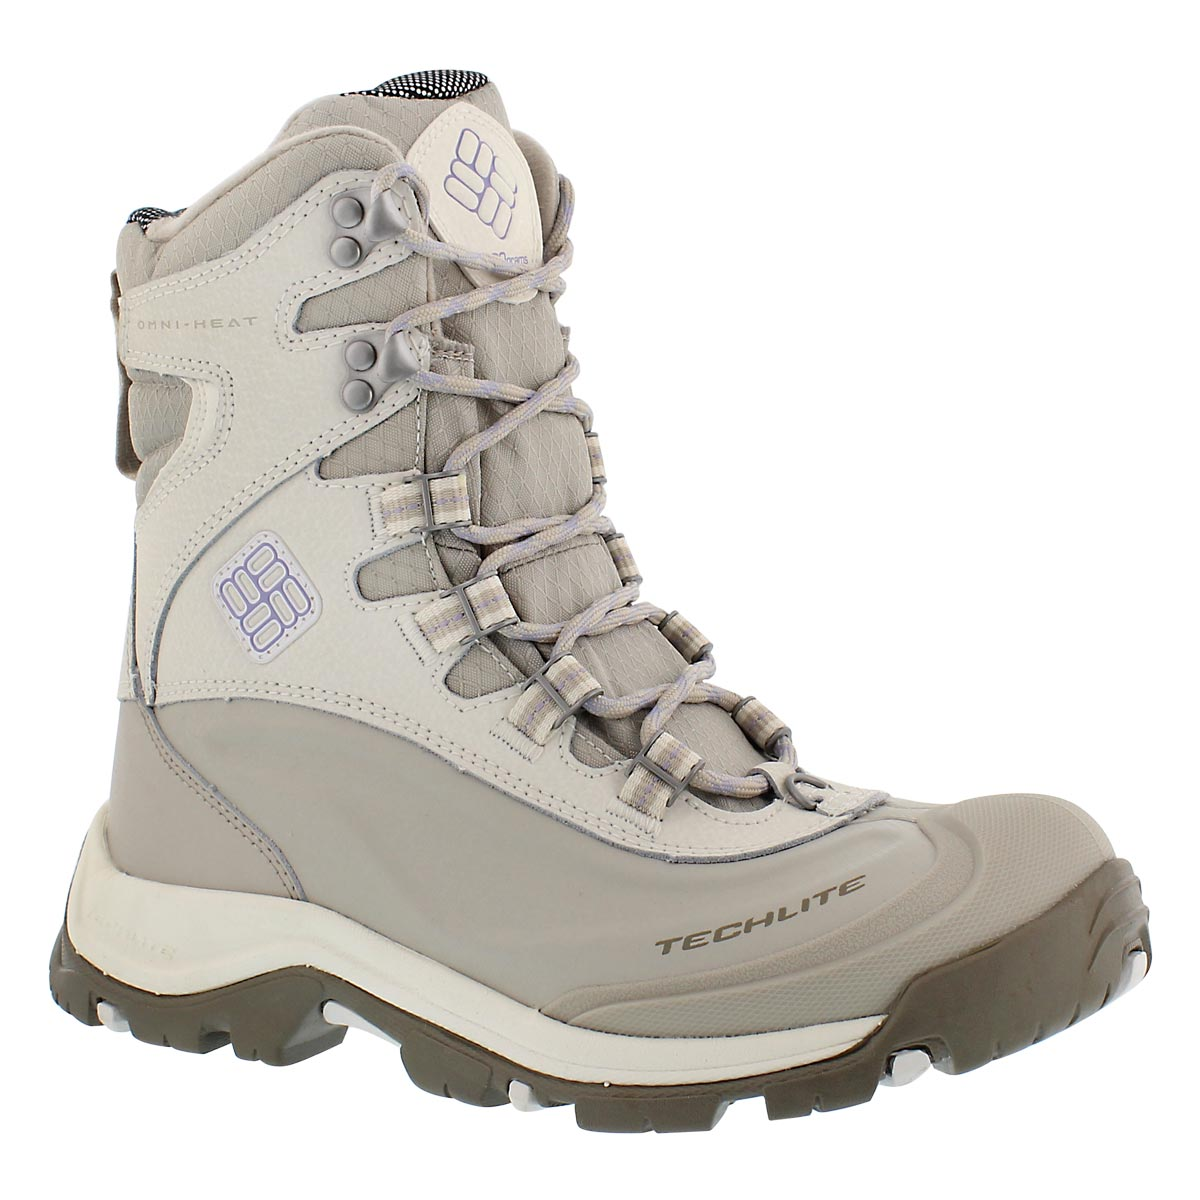 Lds Bugaboot Plus III sea salt wntr boot